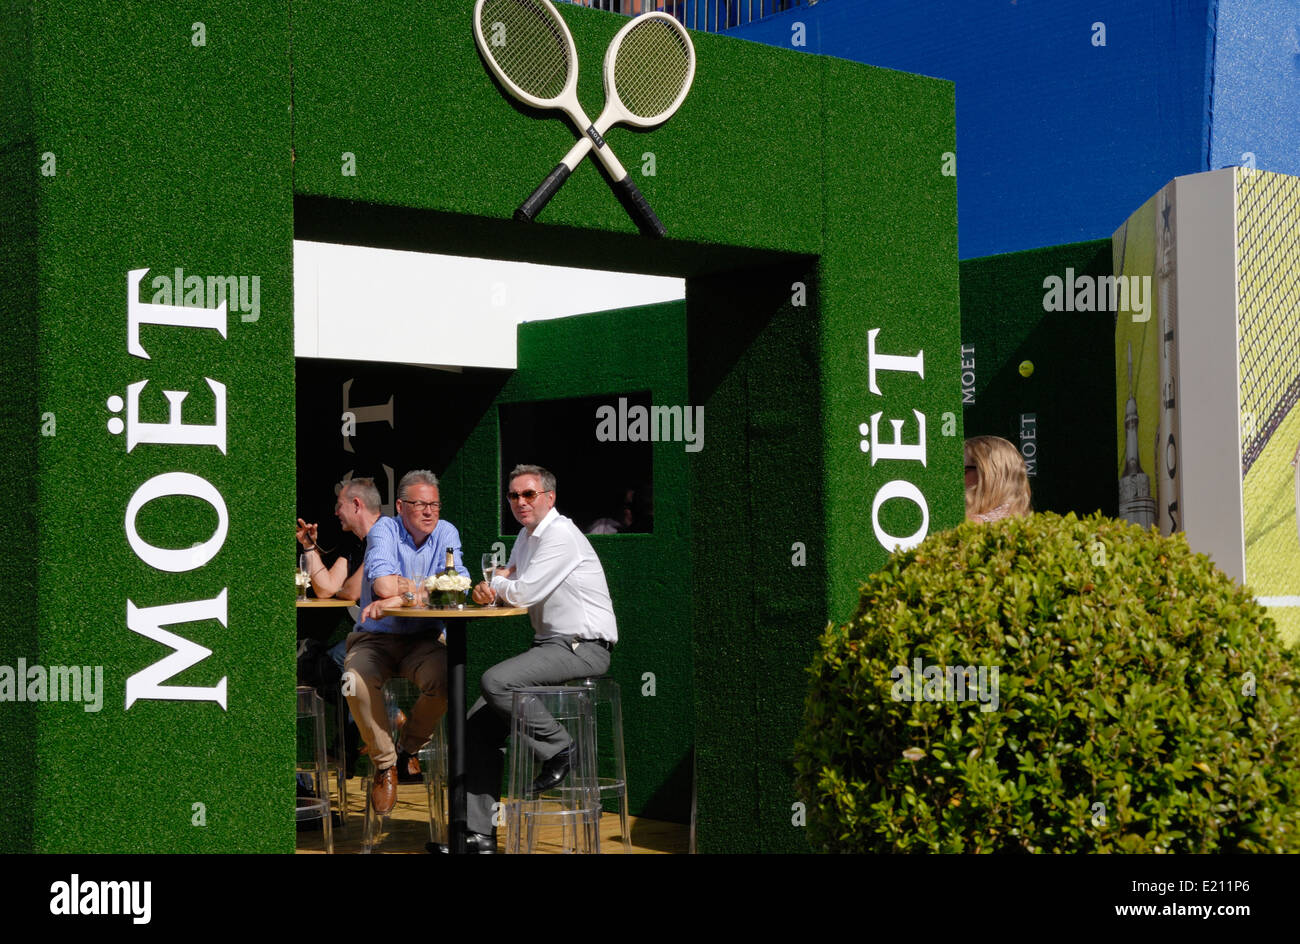 Aegon Tennis Championships, Queens Club, London, June10th 2014. Hospitality area - Stock Image